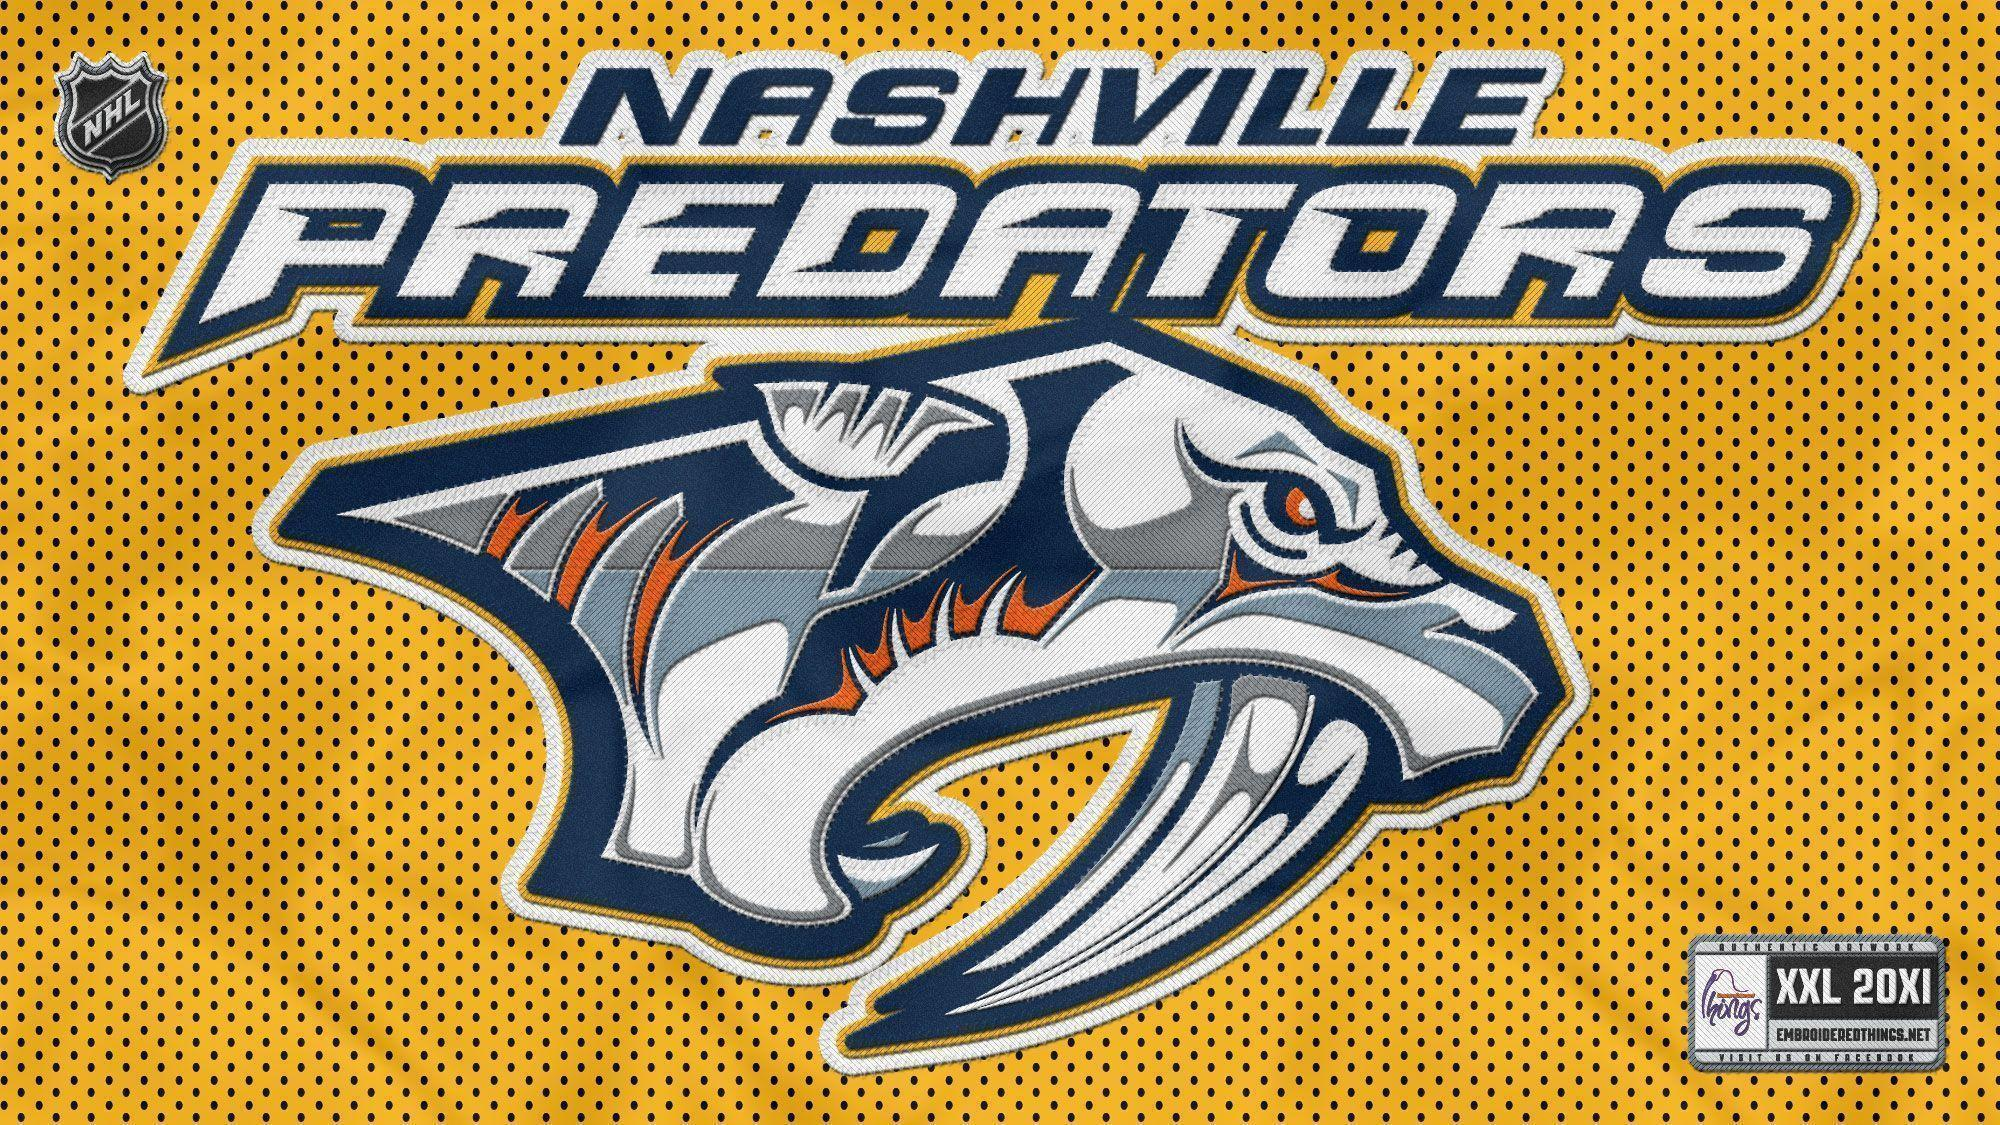 nashville predators Need nashville predators tickets ticketcity offers 100% money-back guarantee, up-to-date prices & event information over 1 million customers served since 1990.